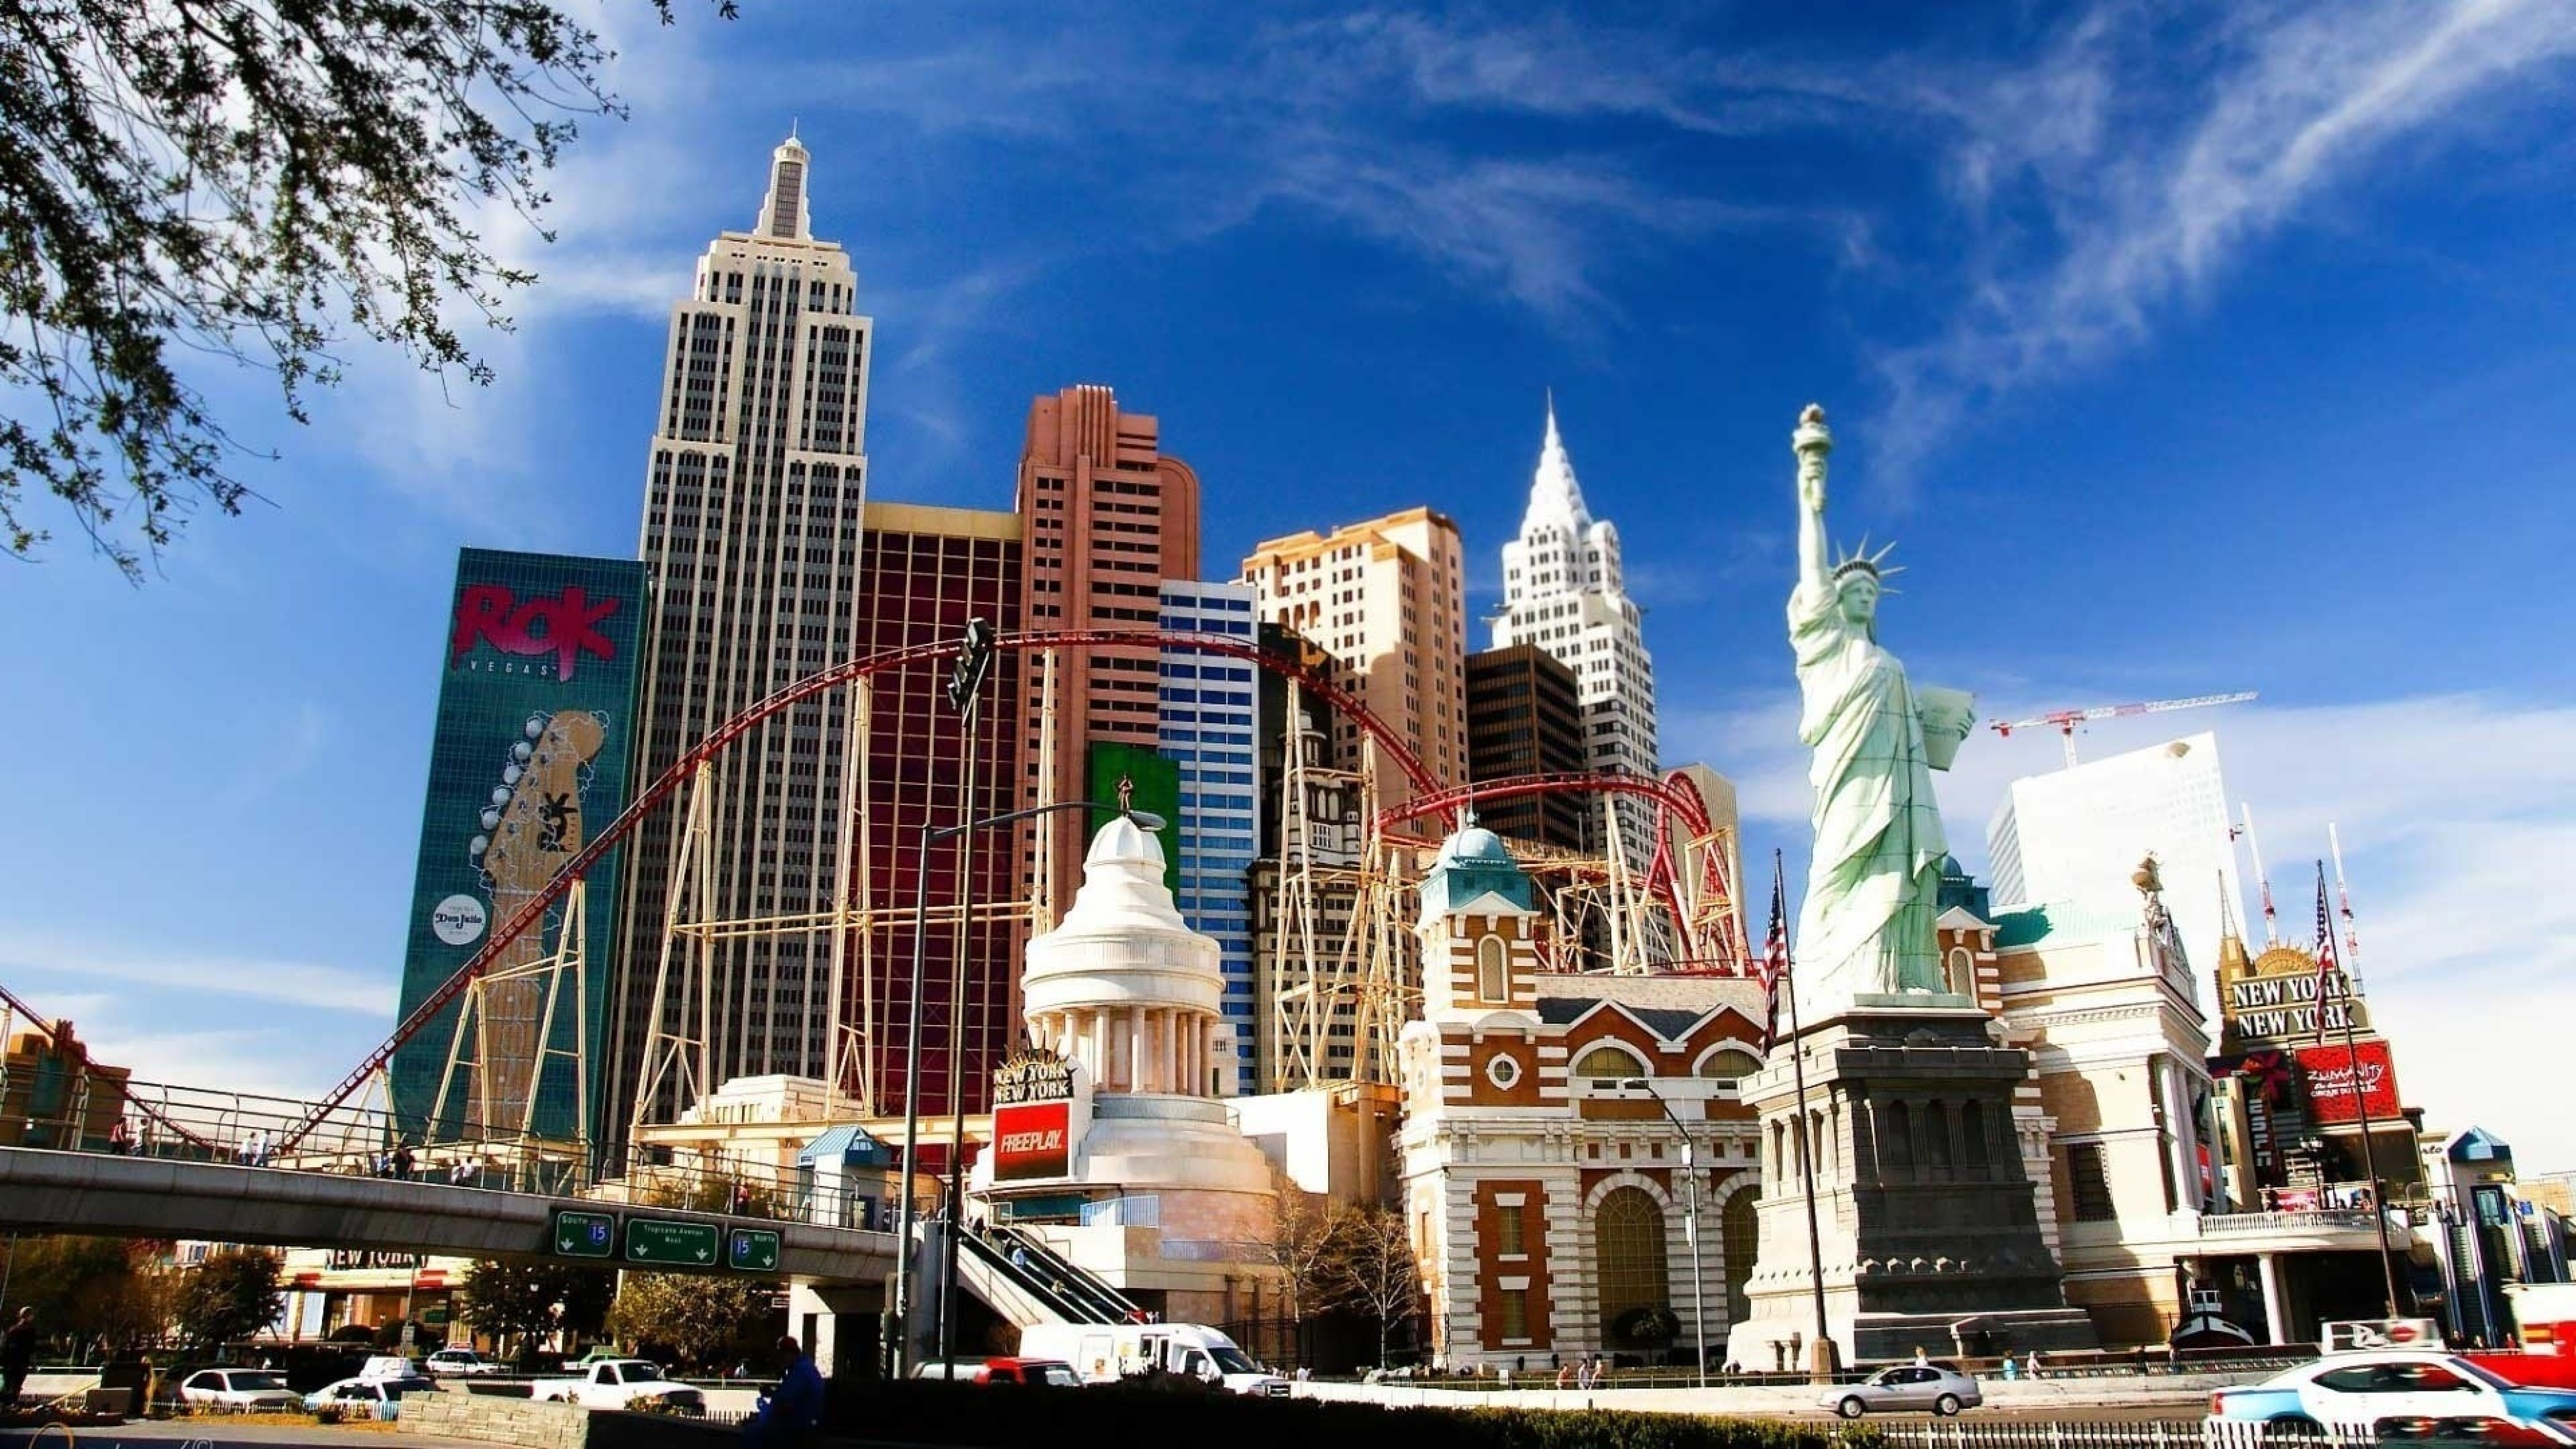 7680x4320 Las Vegas New York Statue 8k Wallpaper Hd City 4k Wallpapers Images Photos And Background